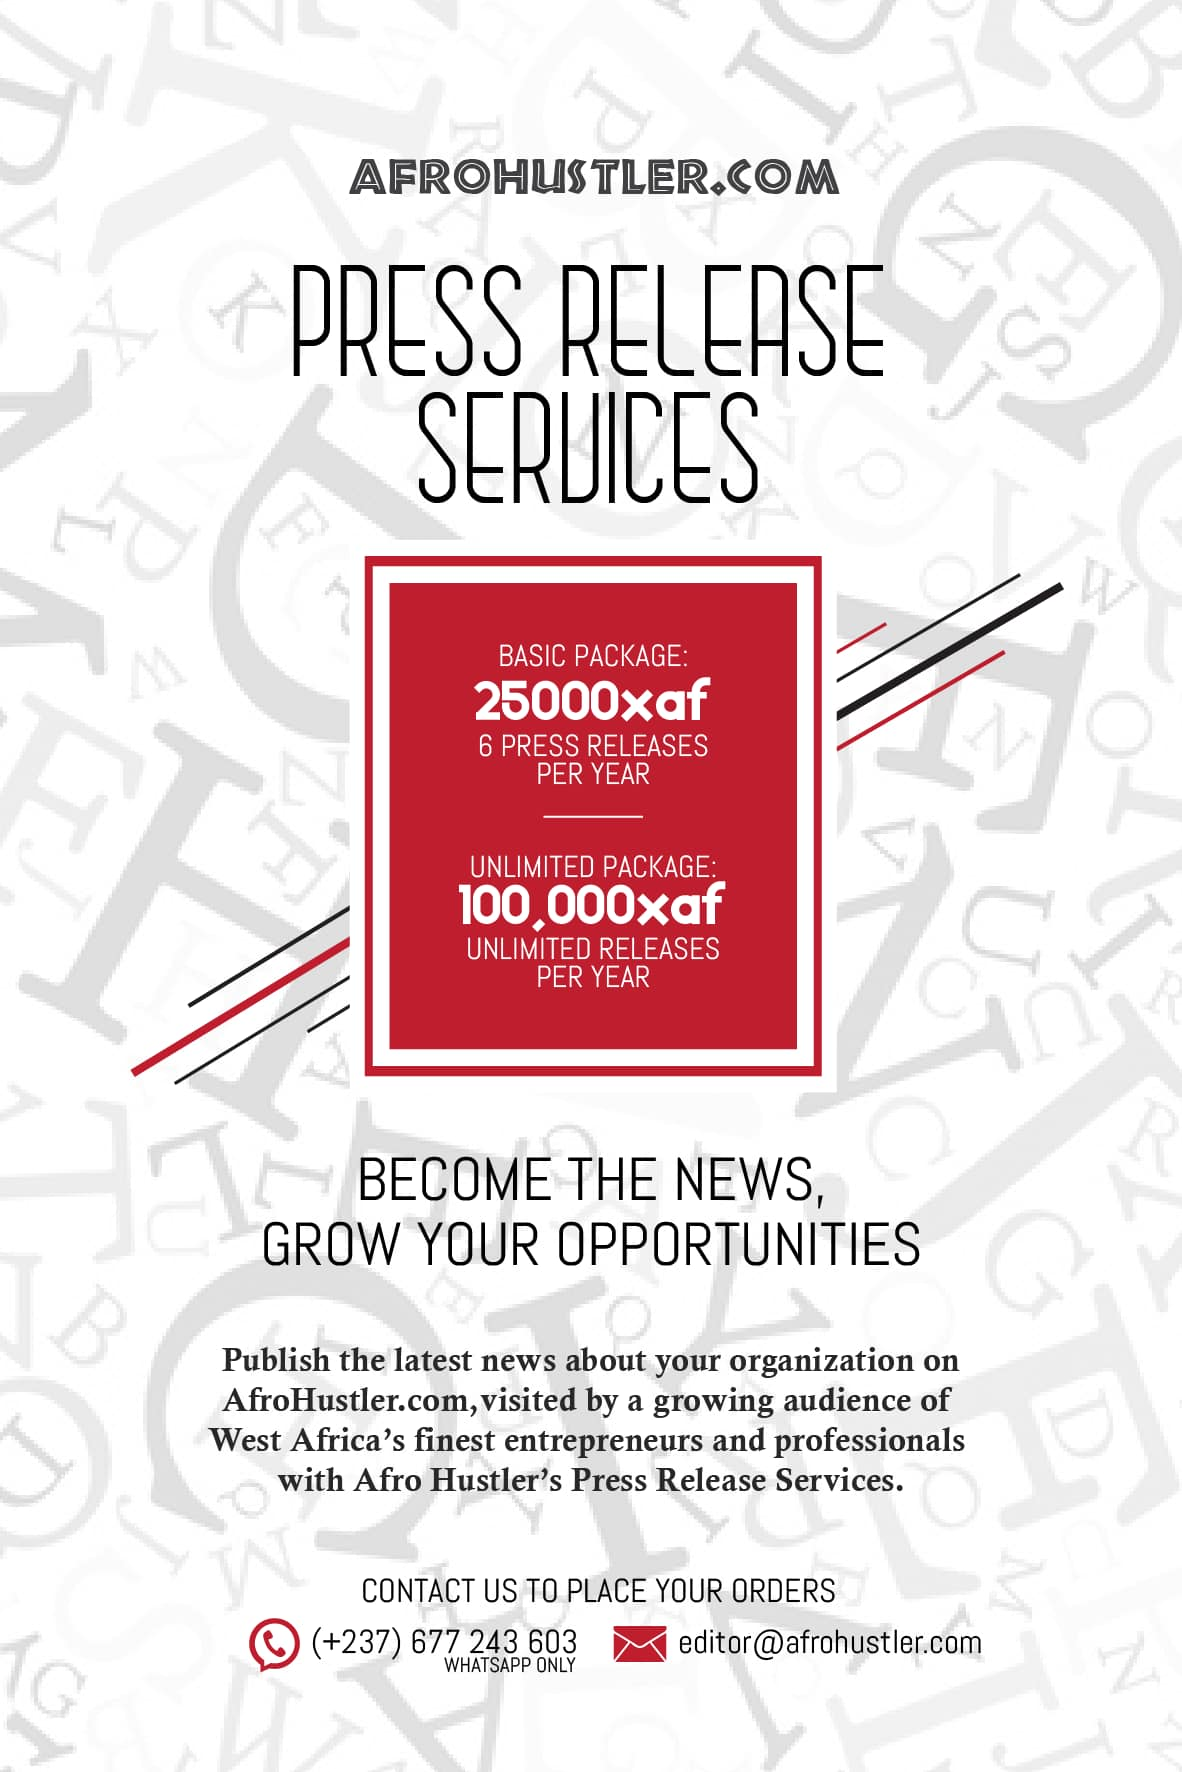 Afro Hustler Press Release Services